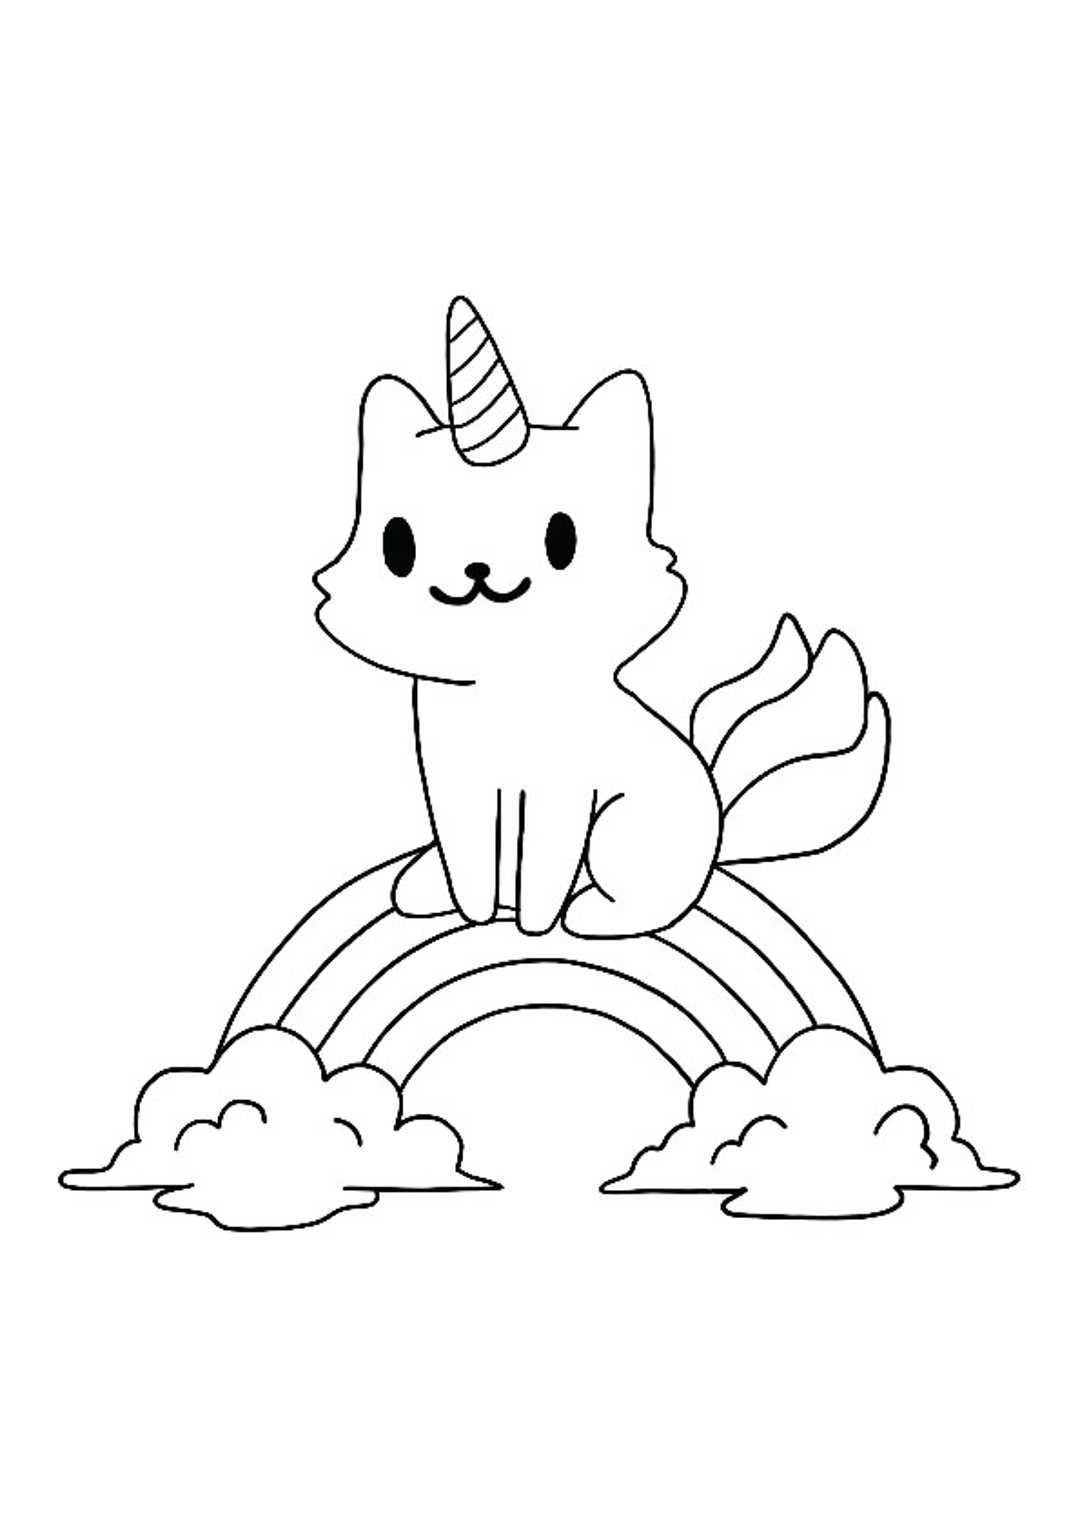 Unicorn Rainbow Coloring Pages Unicorn Coloring Pages Mermaid Coloring Pages Birthday Coloring Pages